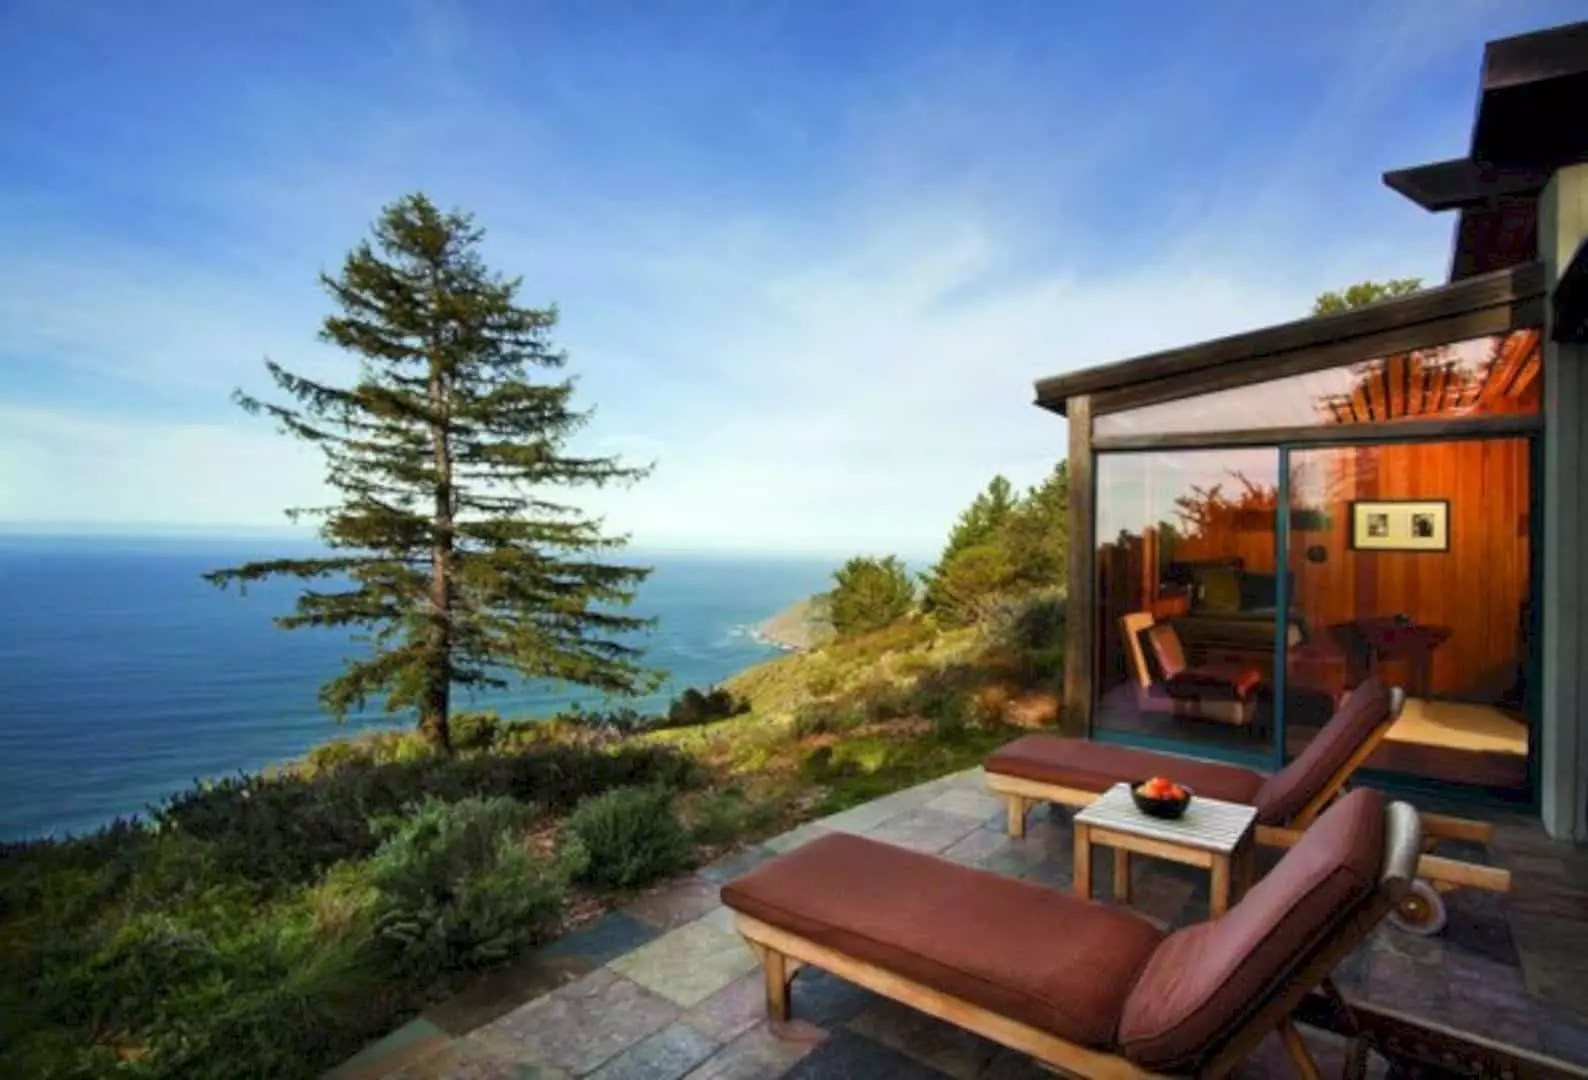 The Post Ranch Inn: A Rustic, Eco Luxury Hotel Overlooks the Pacific